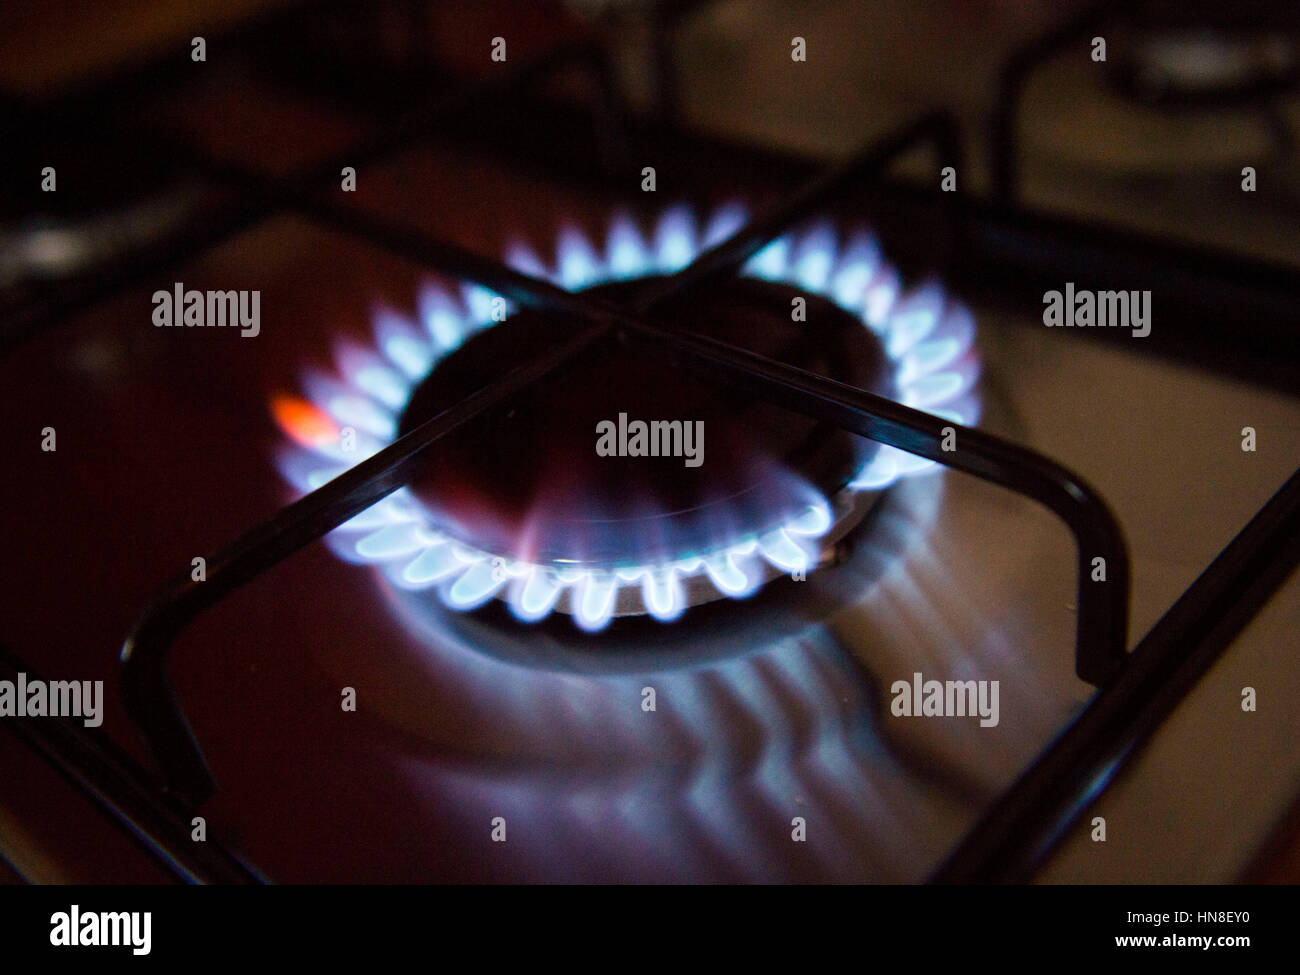 Gas hob cooker flame alight cost of energy UK - Stock Image